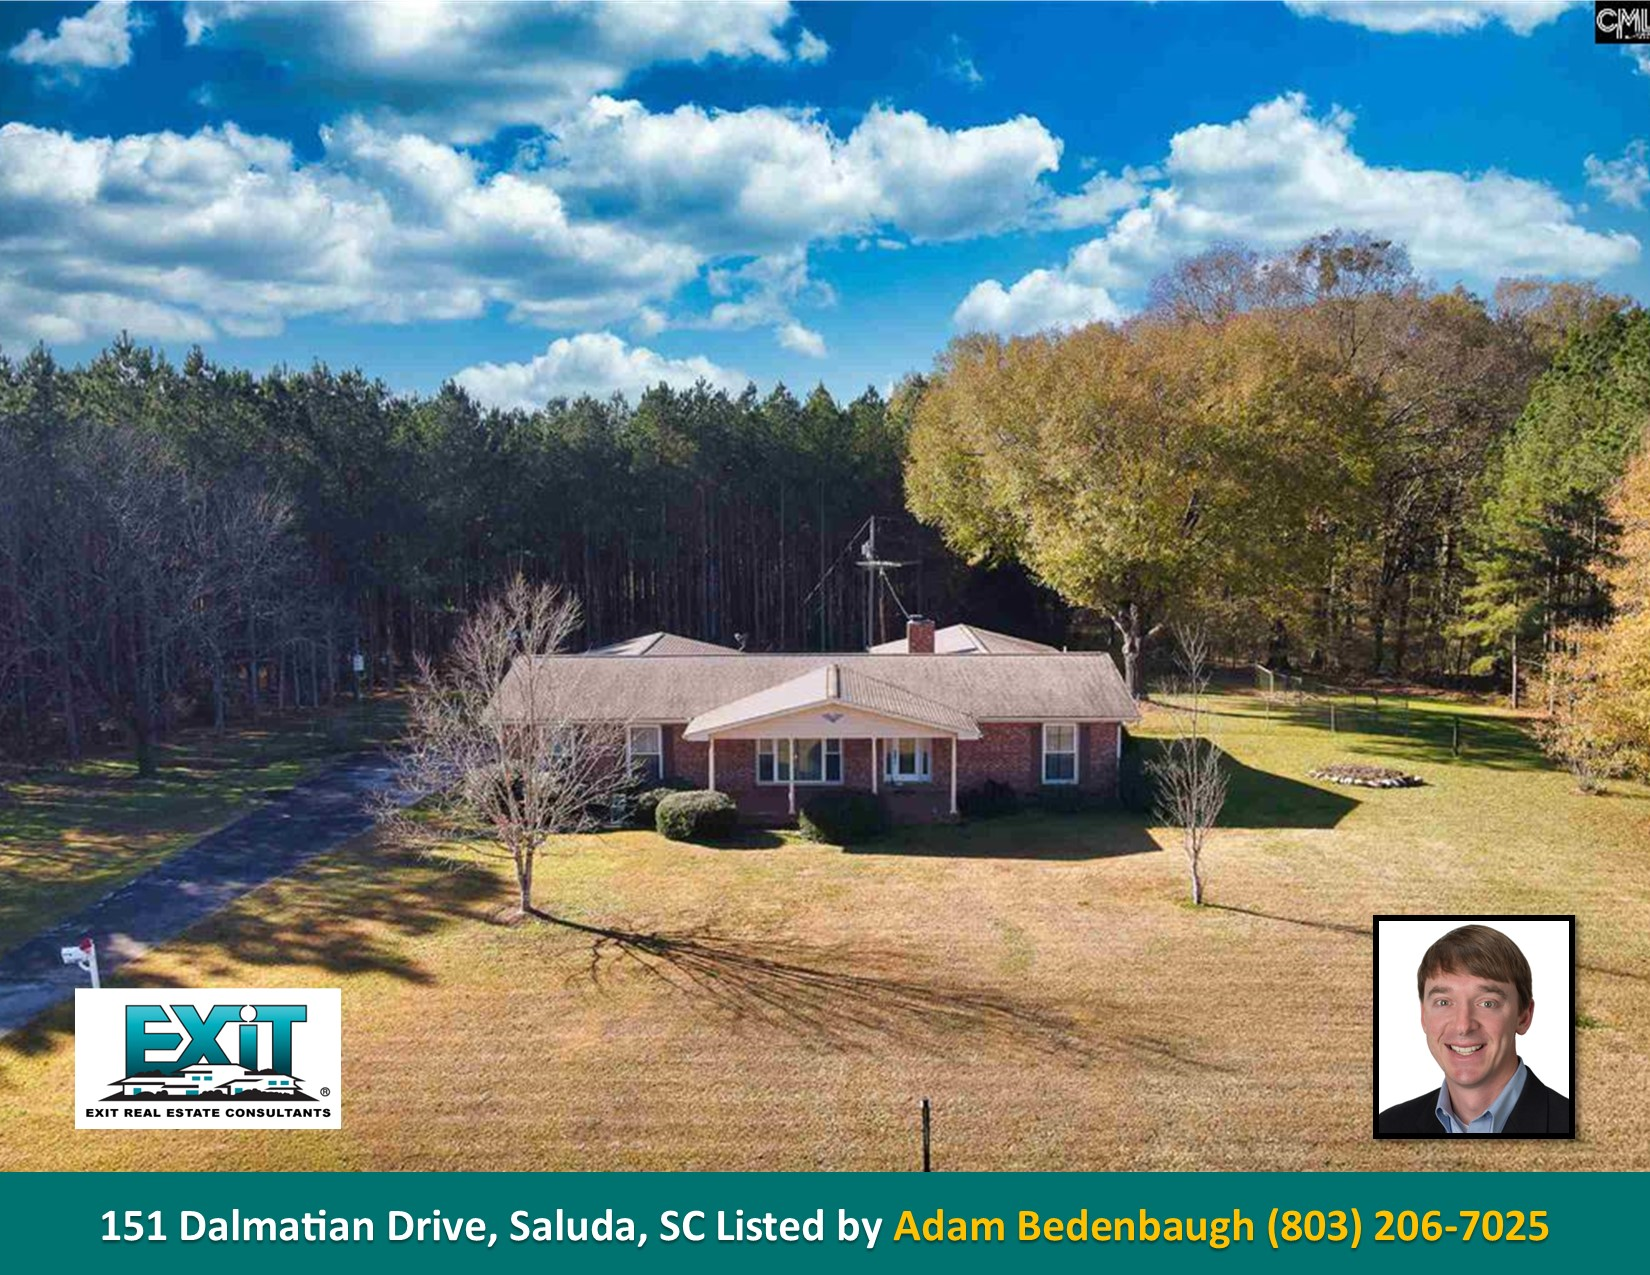 Just listed in Saluda